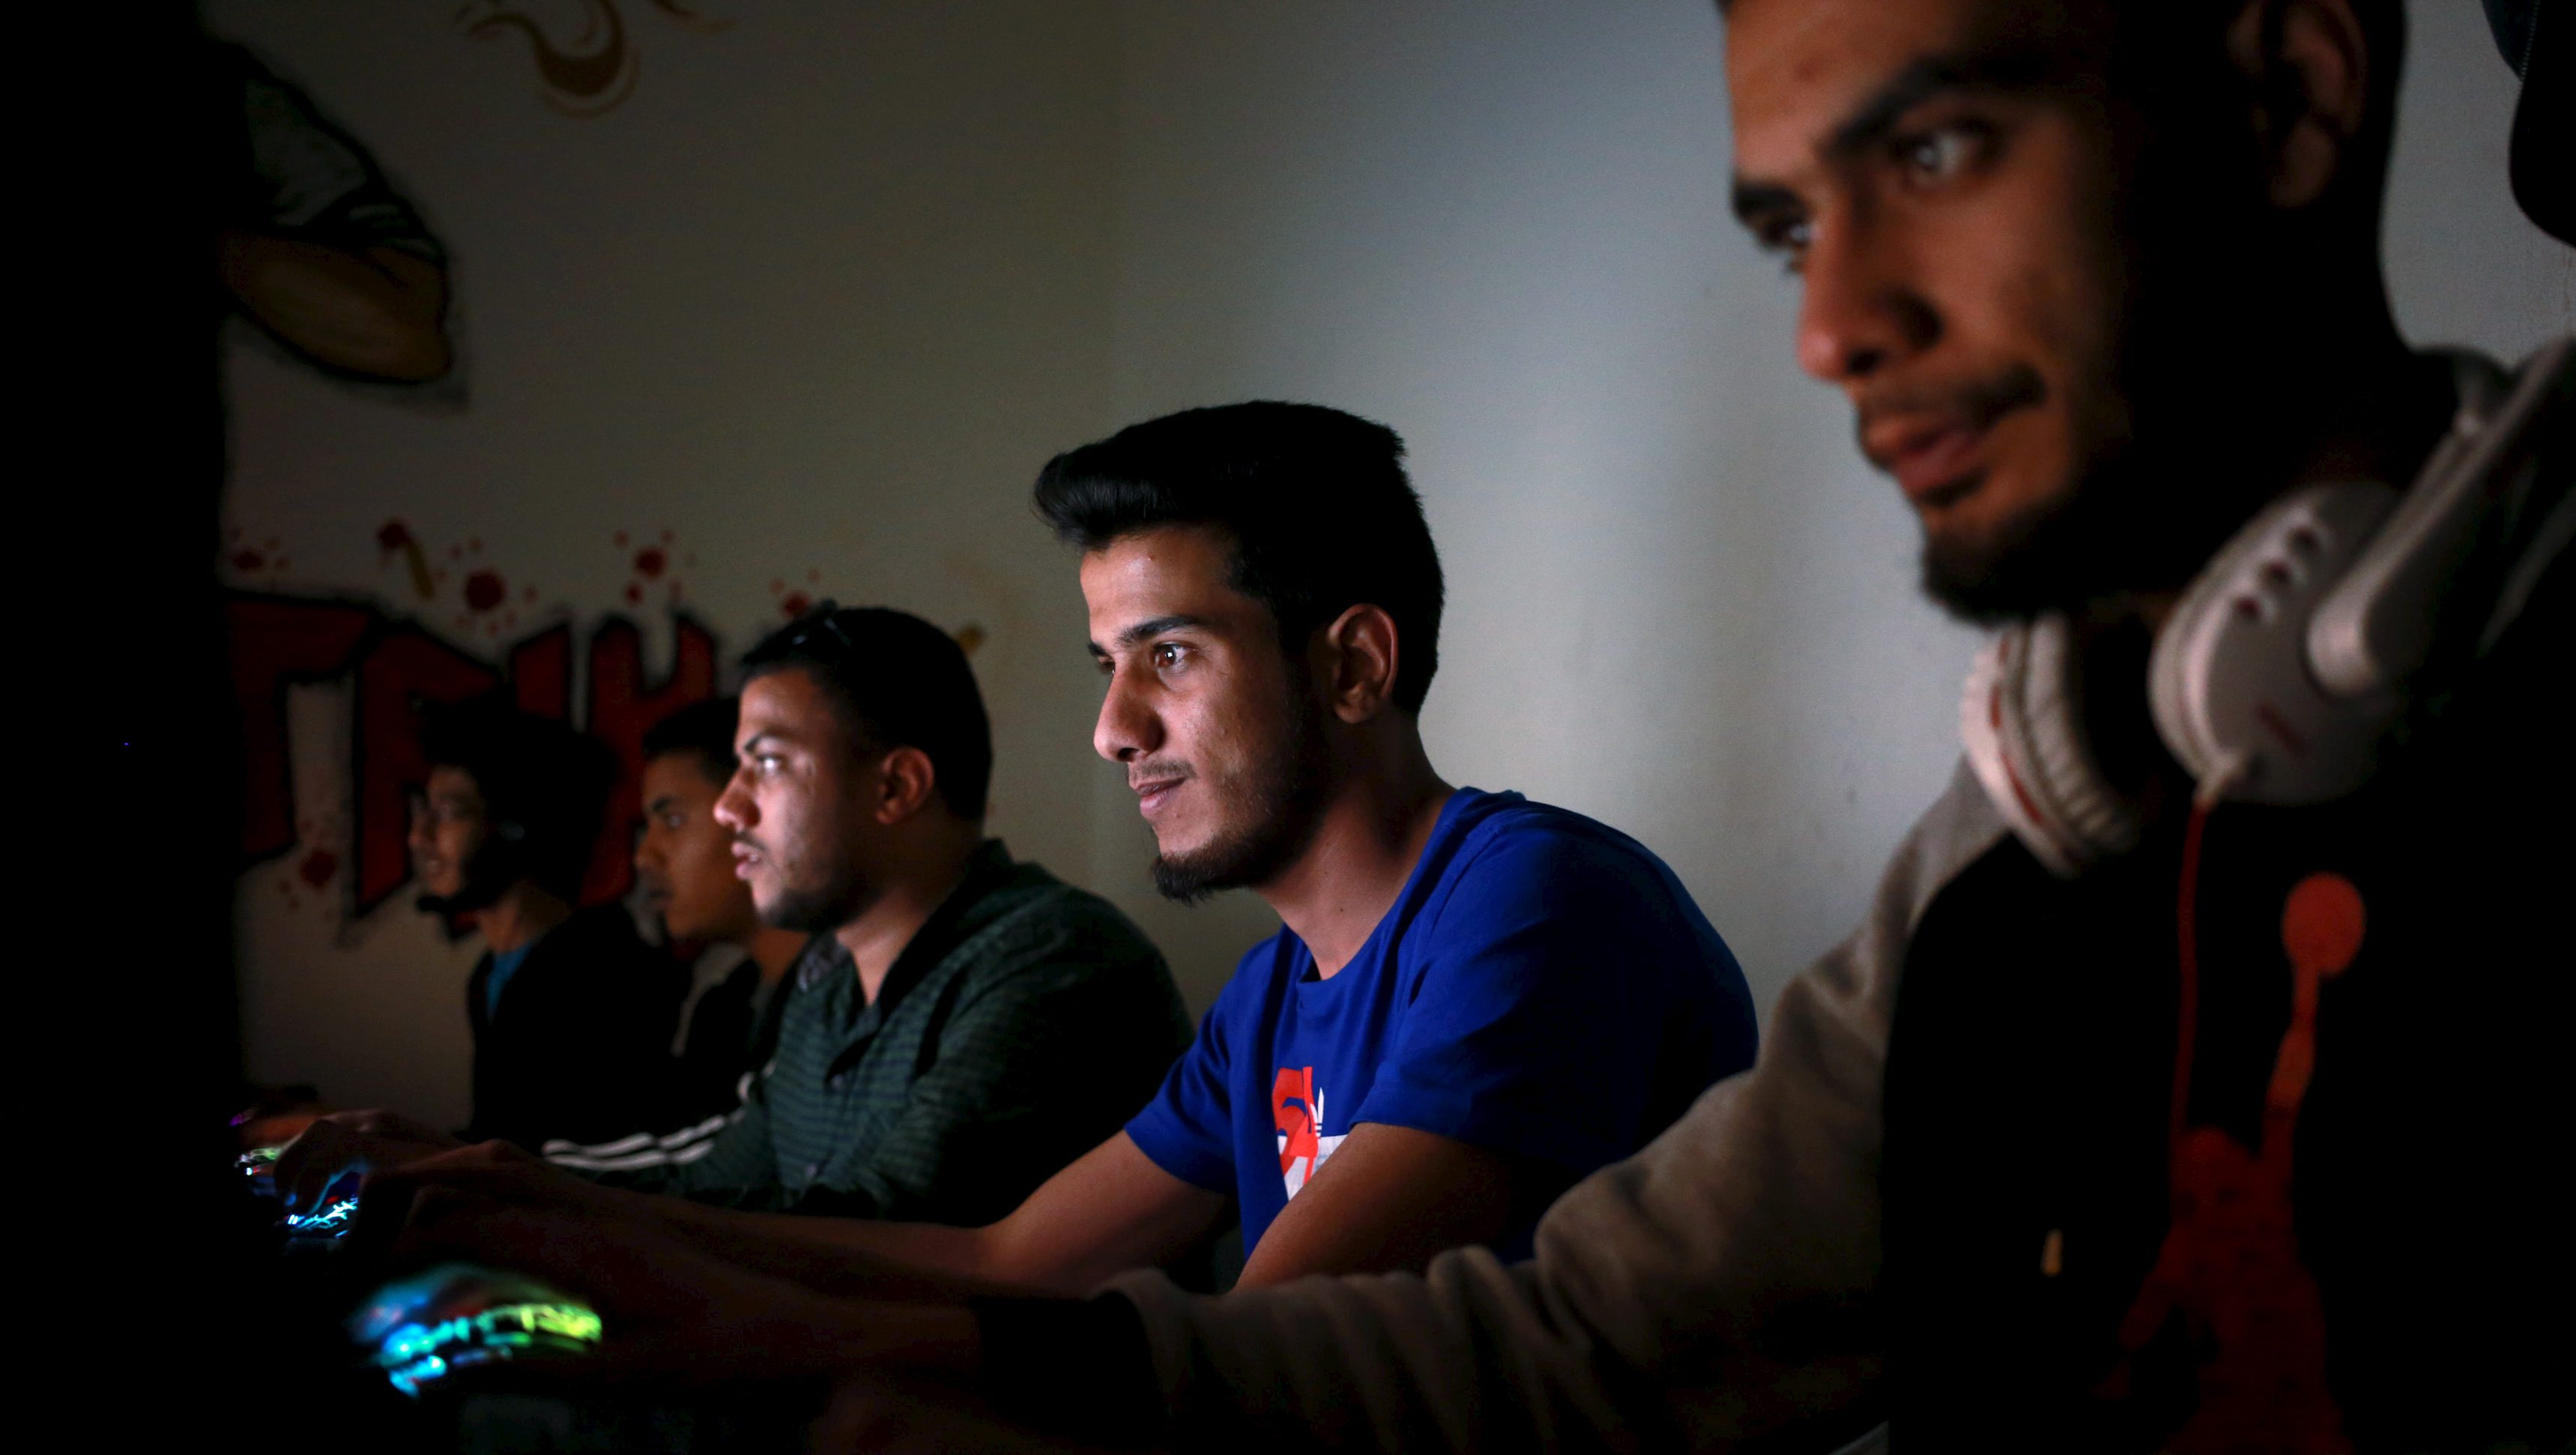 Libyans play computer games at an internet cafe in Benghazi, Libya April 10, 2016. Picture taken April 10, 2016.